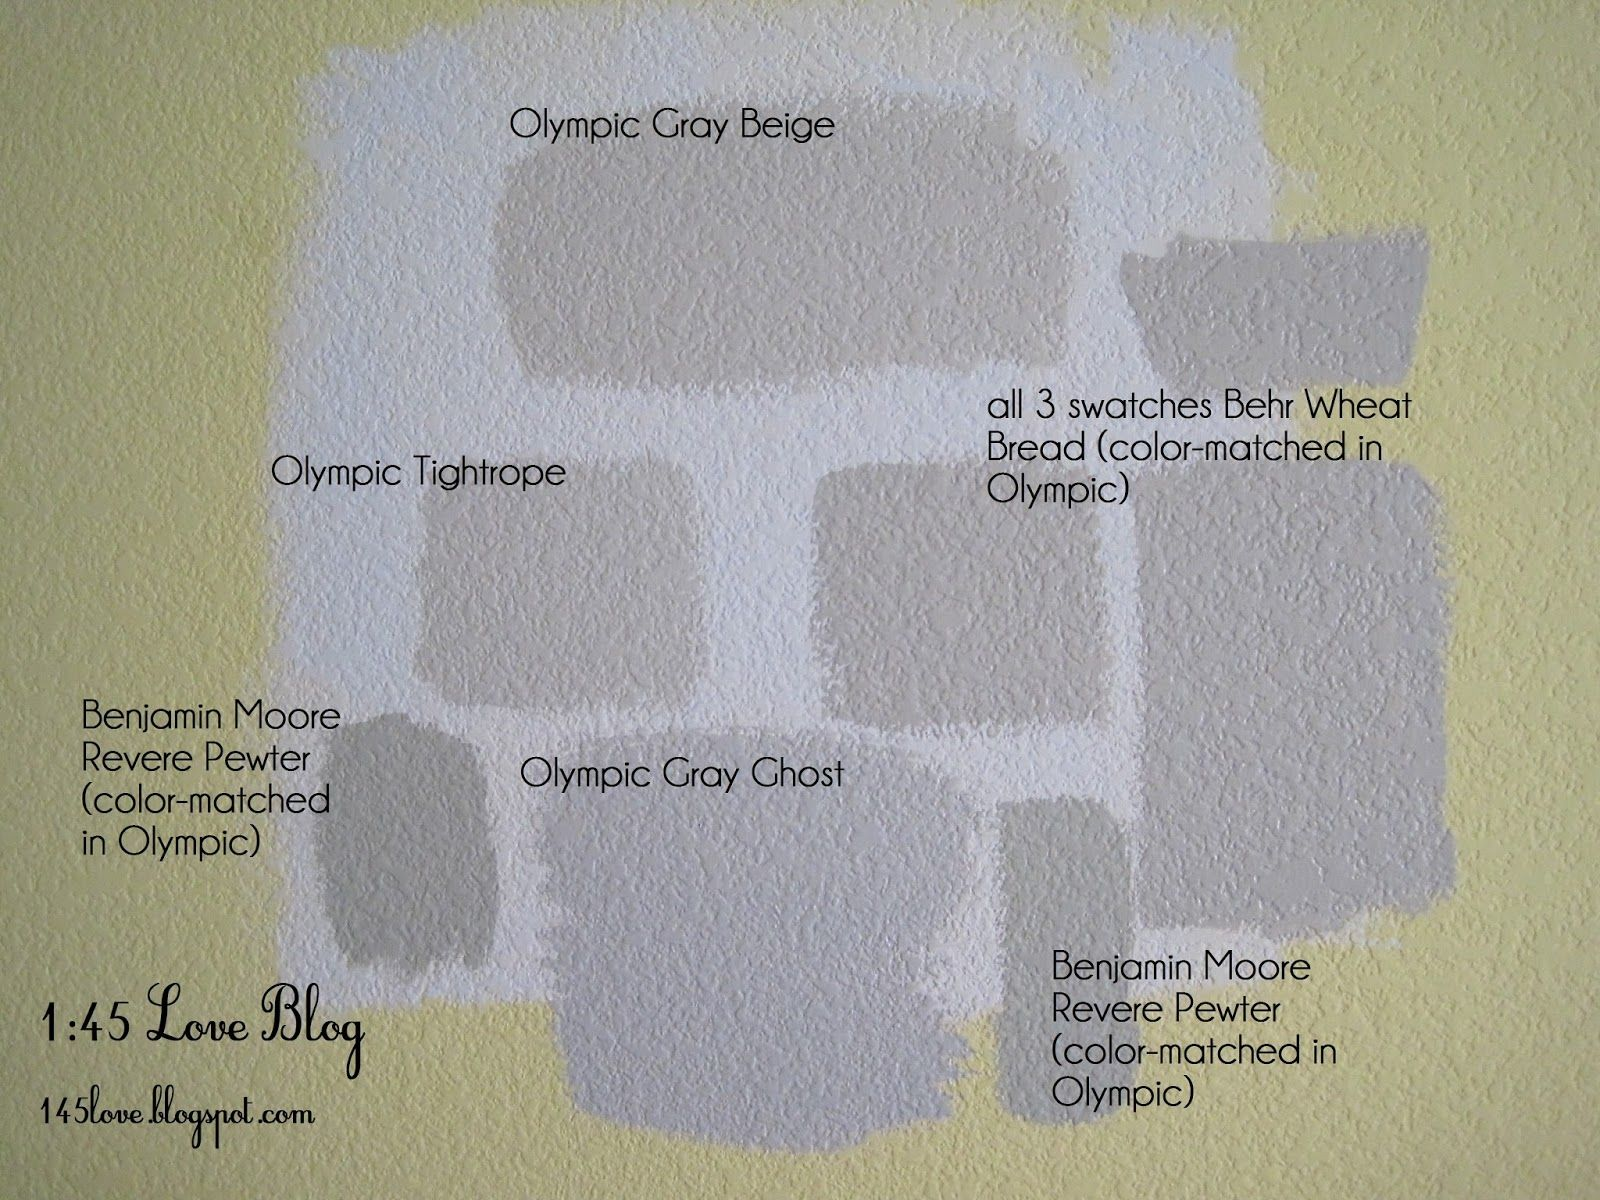 Greige Paint Wall Swatches Olympic Gray Beige Benjamin Moore Revere Pewter Ghost Rope Behr Wheat Bread